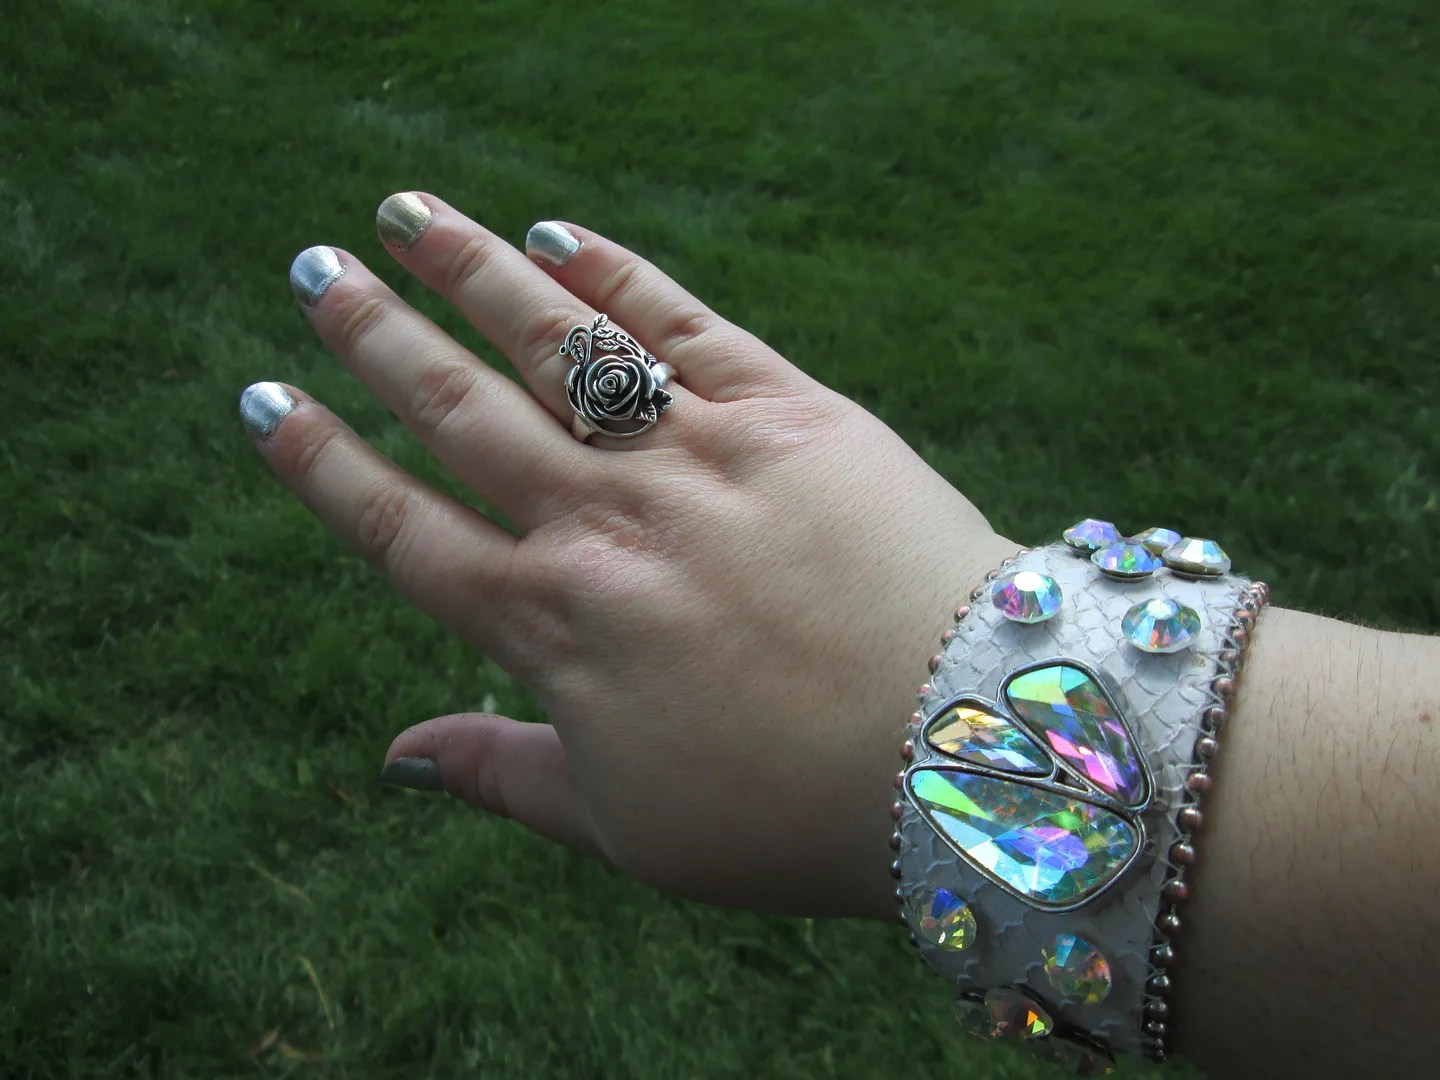 hand with gold and silver nail polish, rose ring, and rhinestone wristband